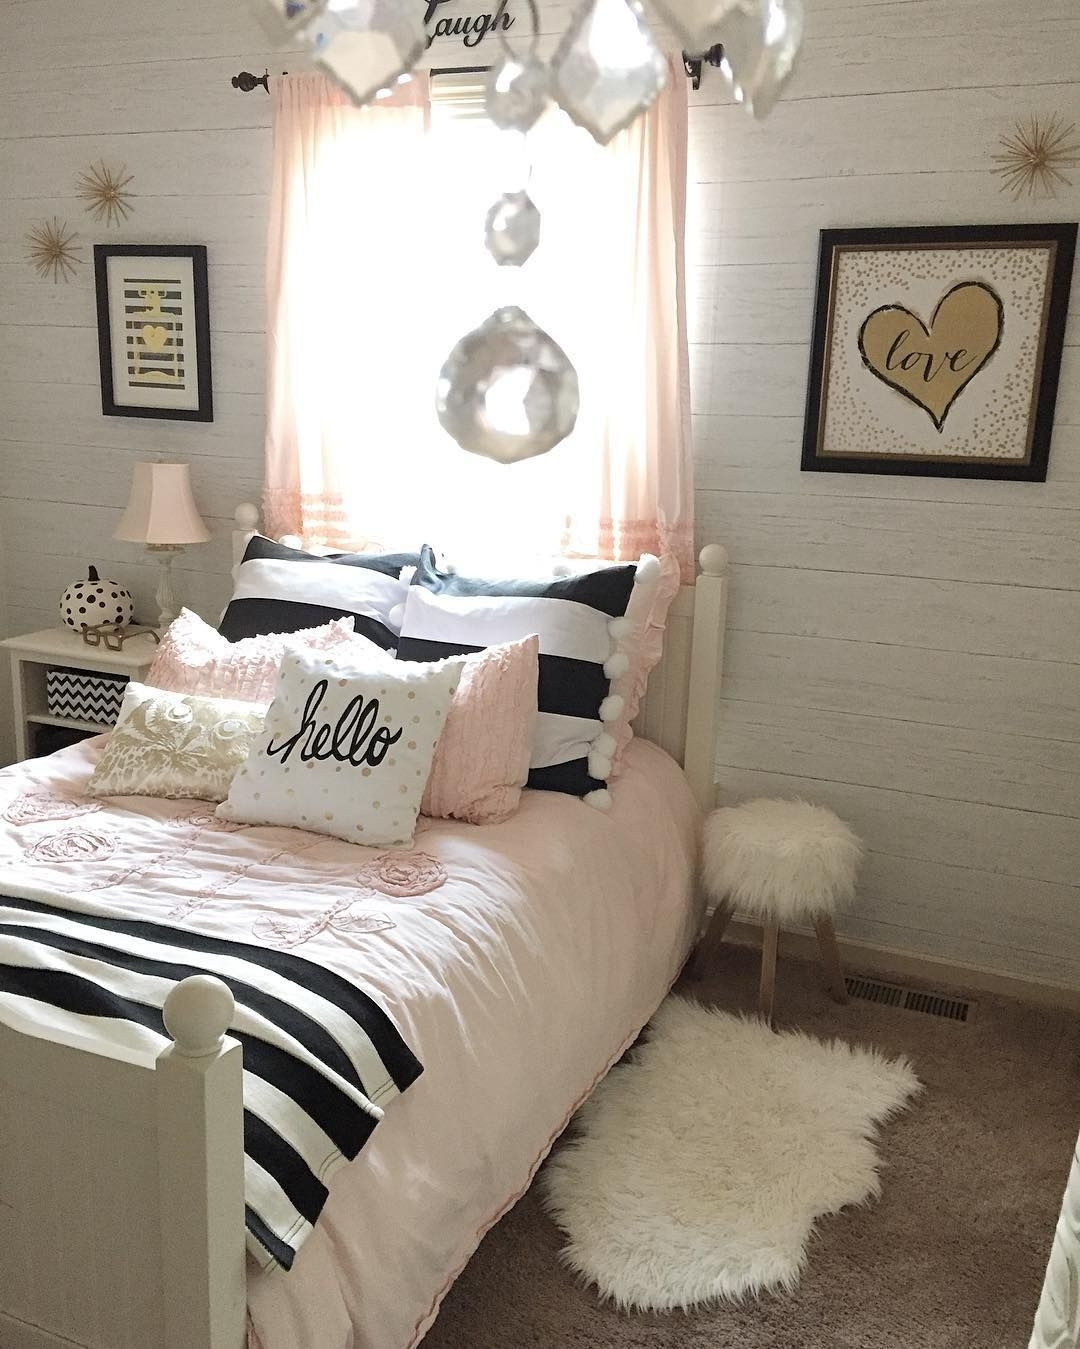 12 Fun Girl'S Bedroom Decor Ideas  Cute Room Decorating For Girls Tags A Girl Room Decoration